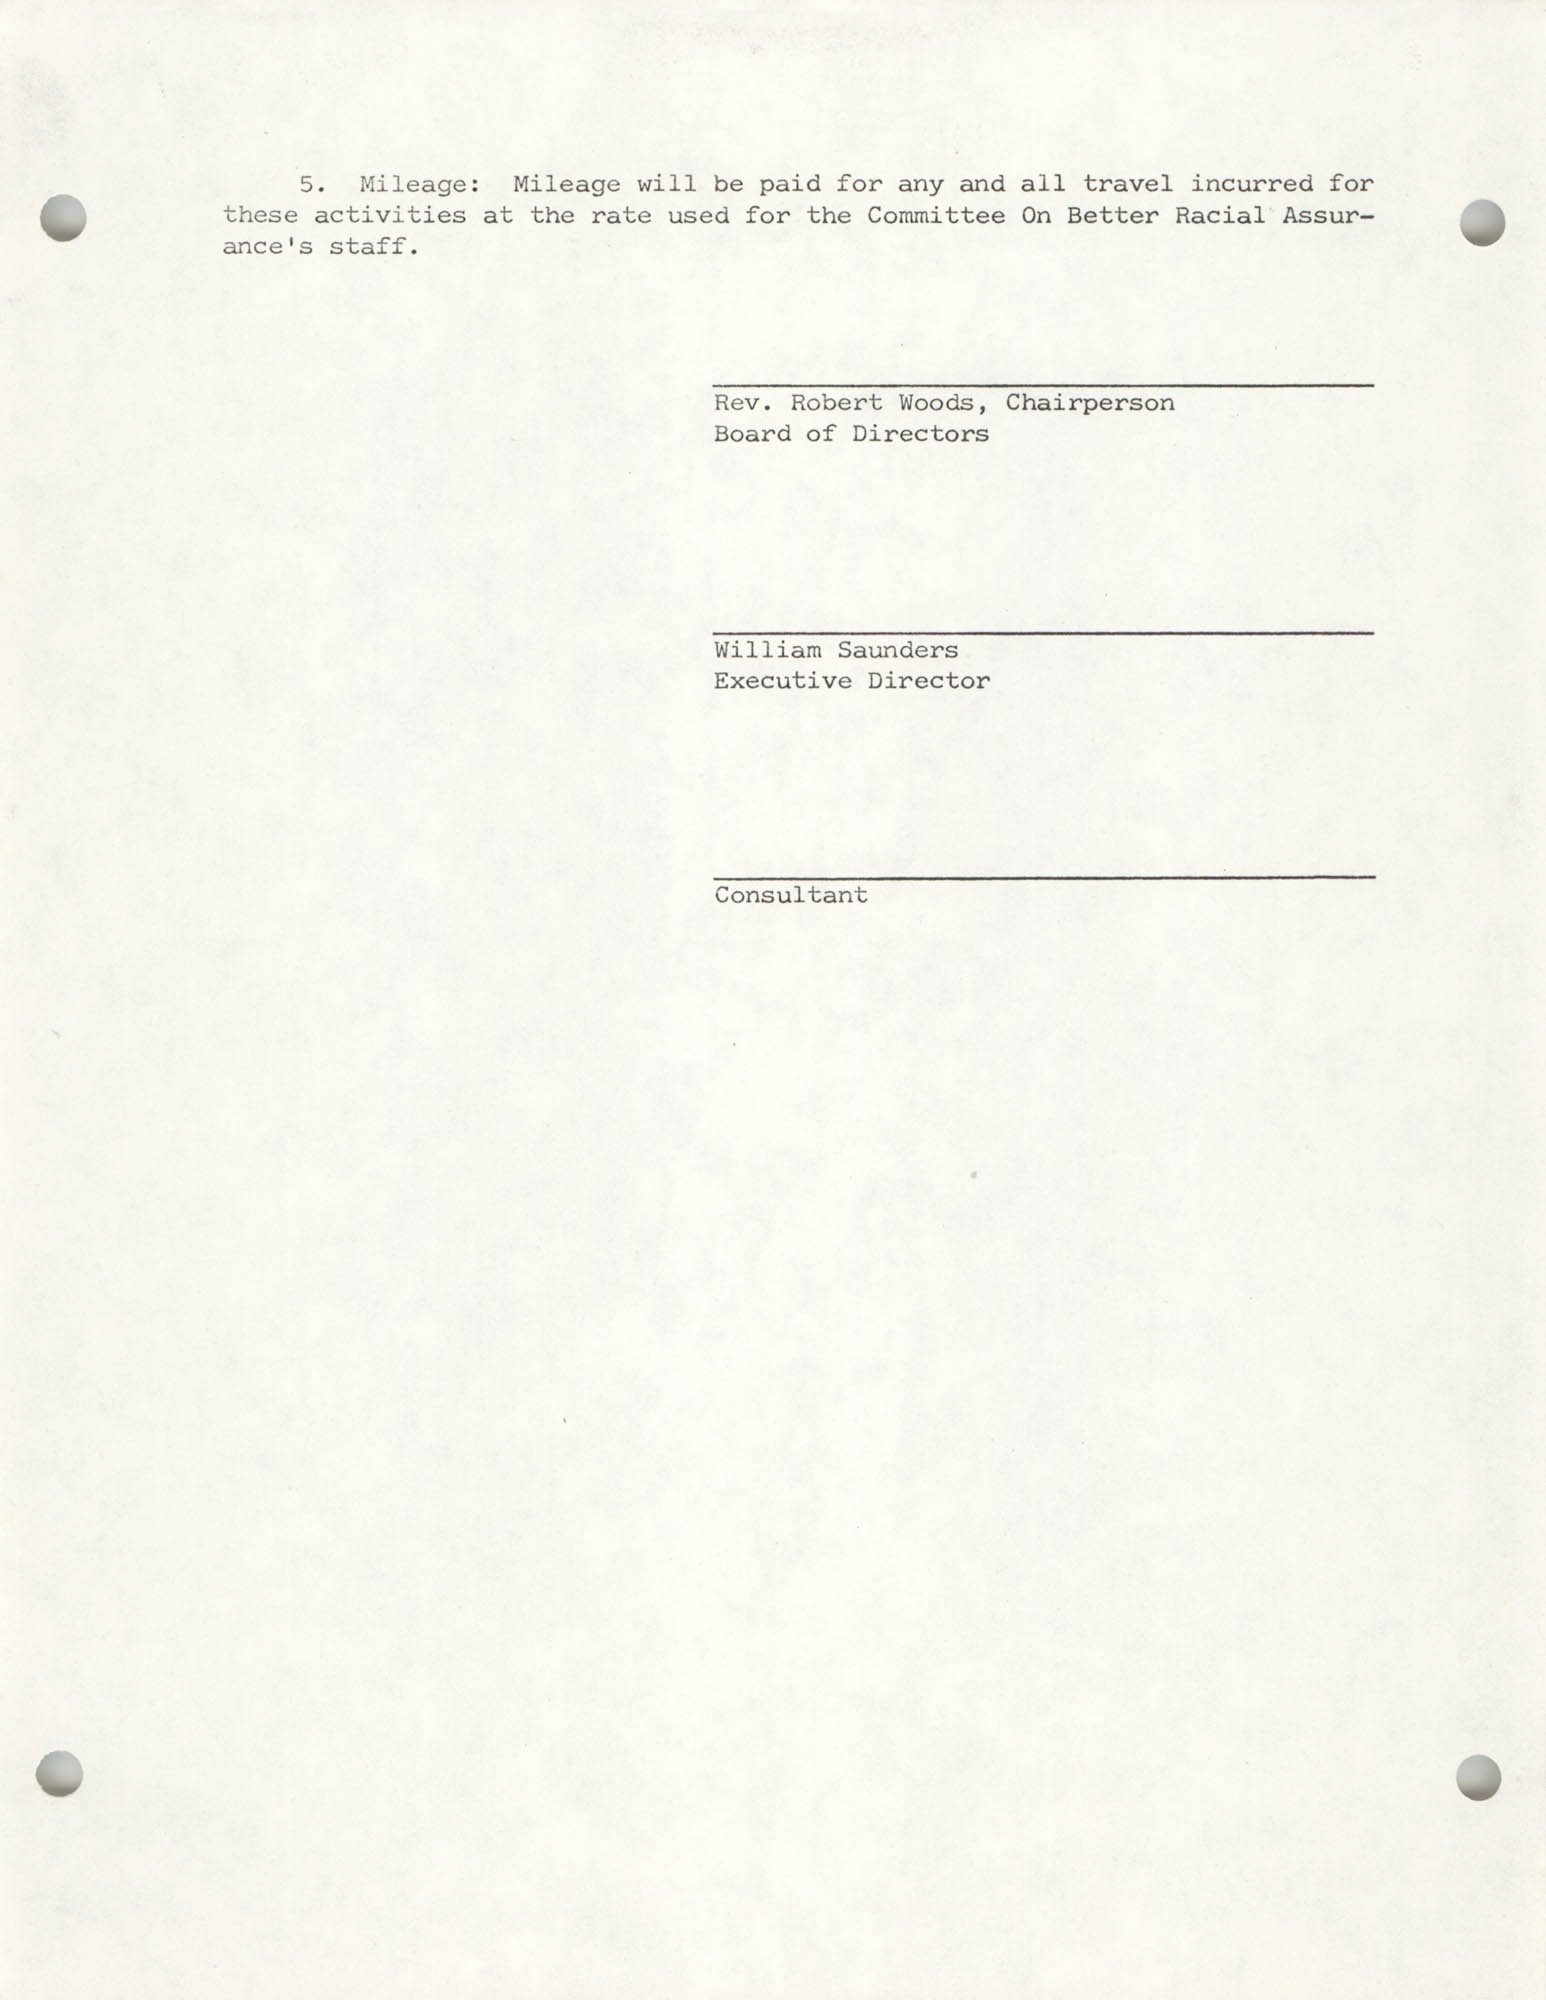 COBRA Letter of Agreement for Professional Assistant Contract, Page 2